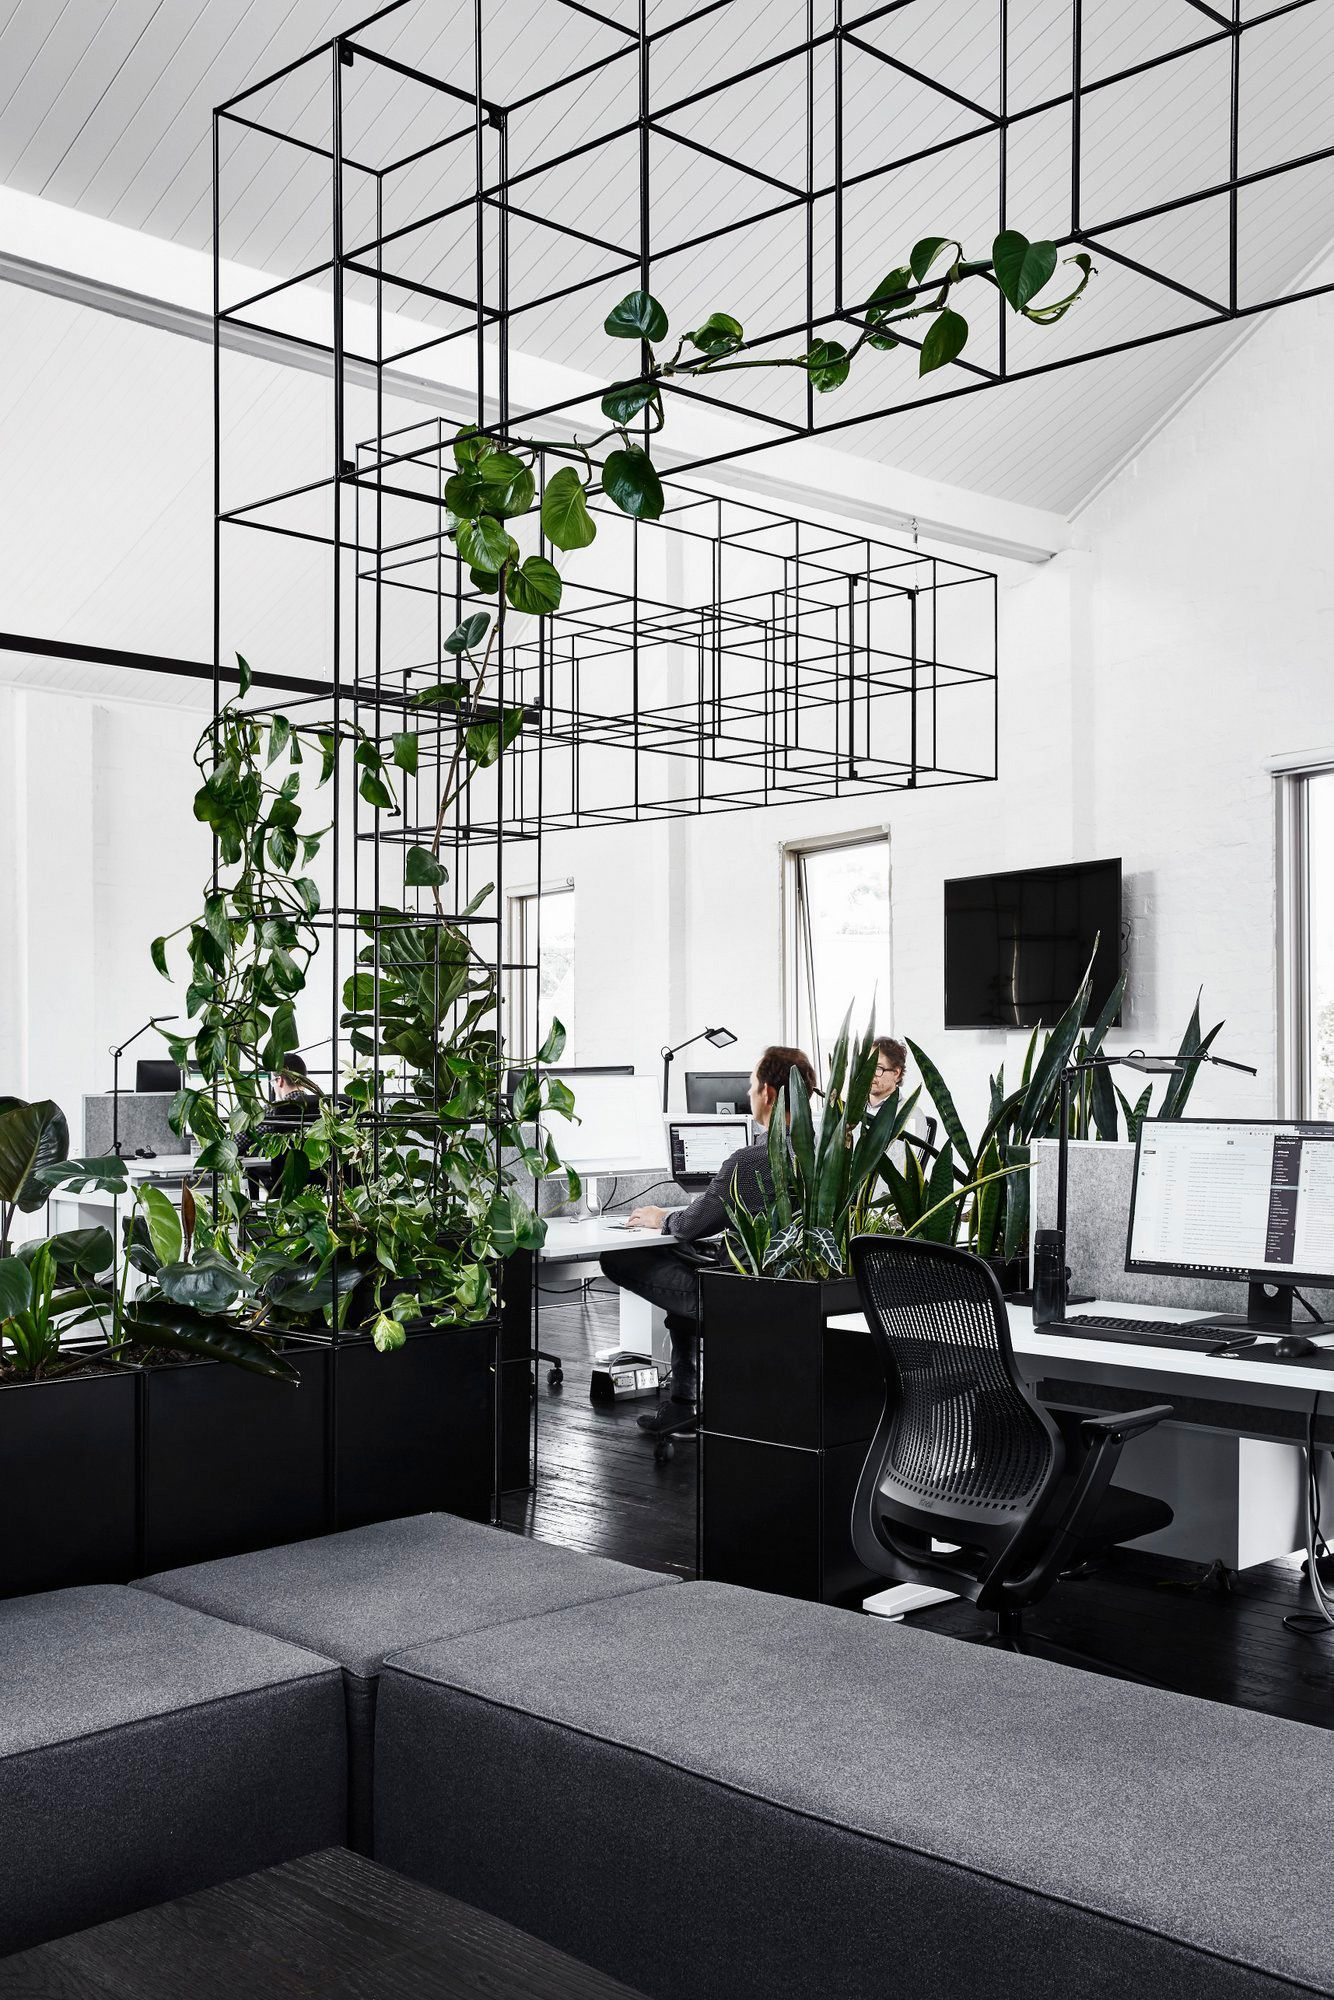 Transform Your Office Into An Inspiring Environment With Delightful Mid Century